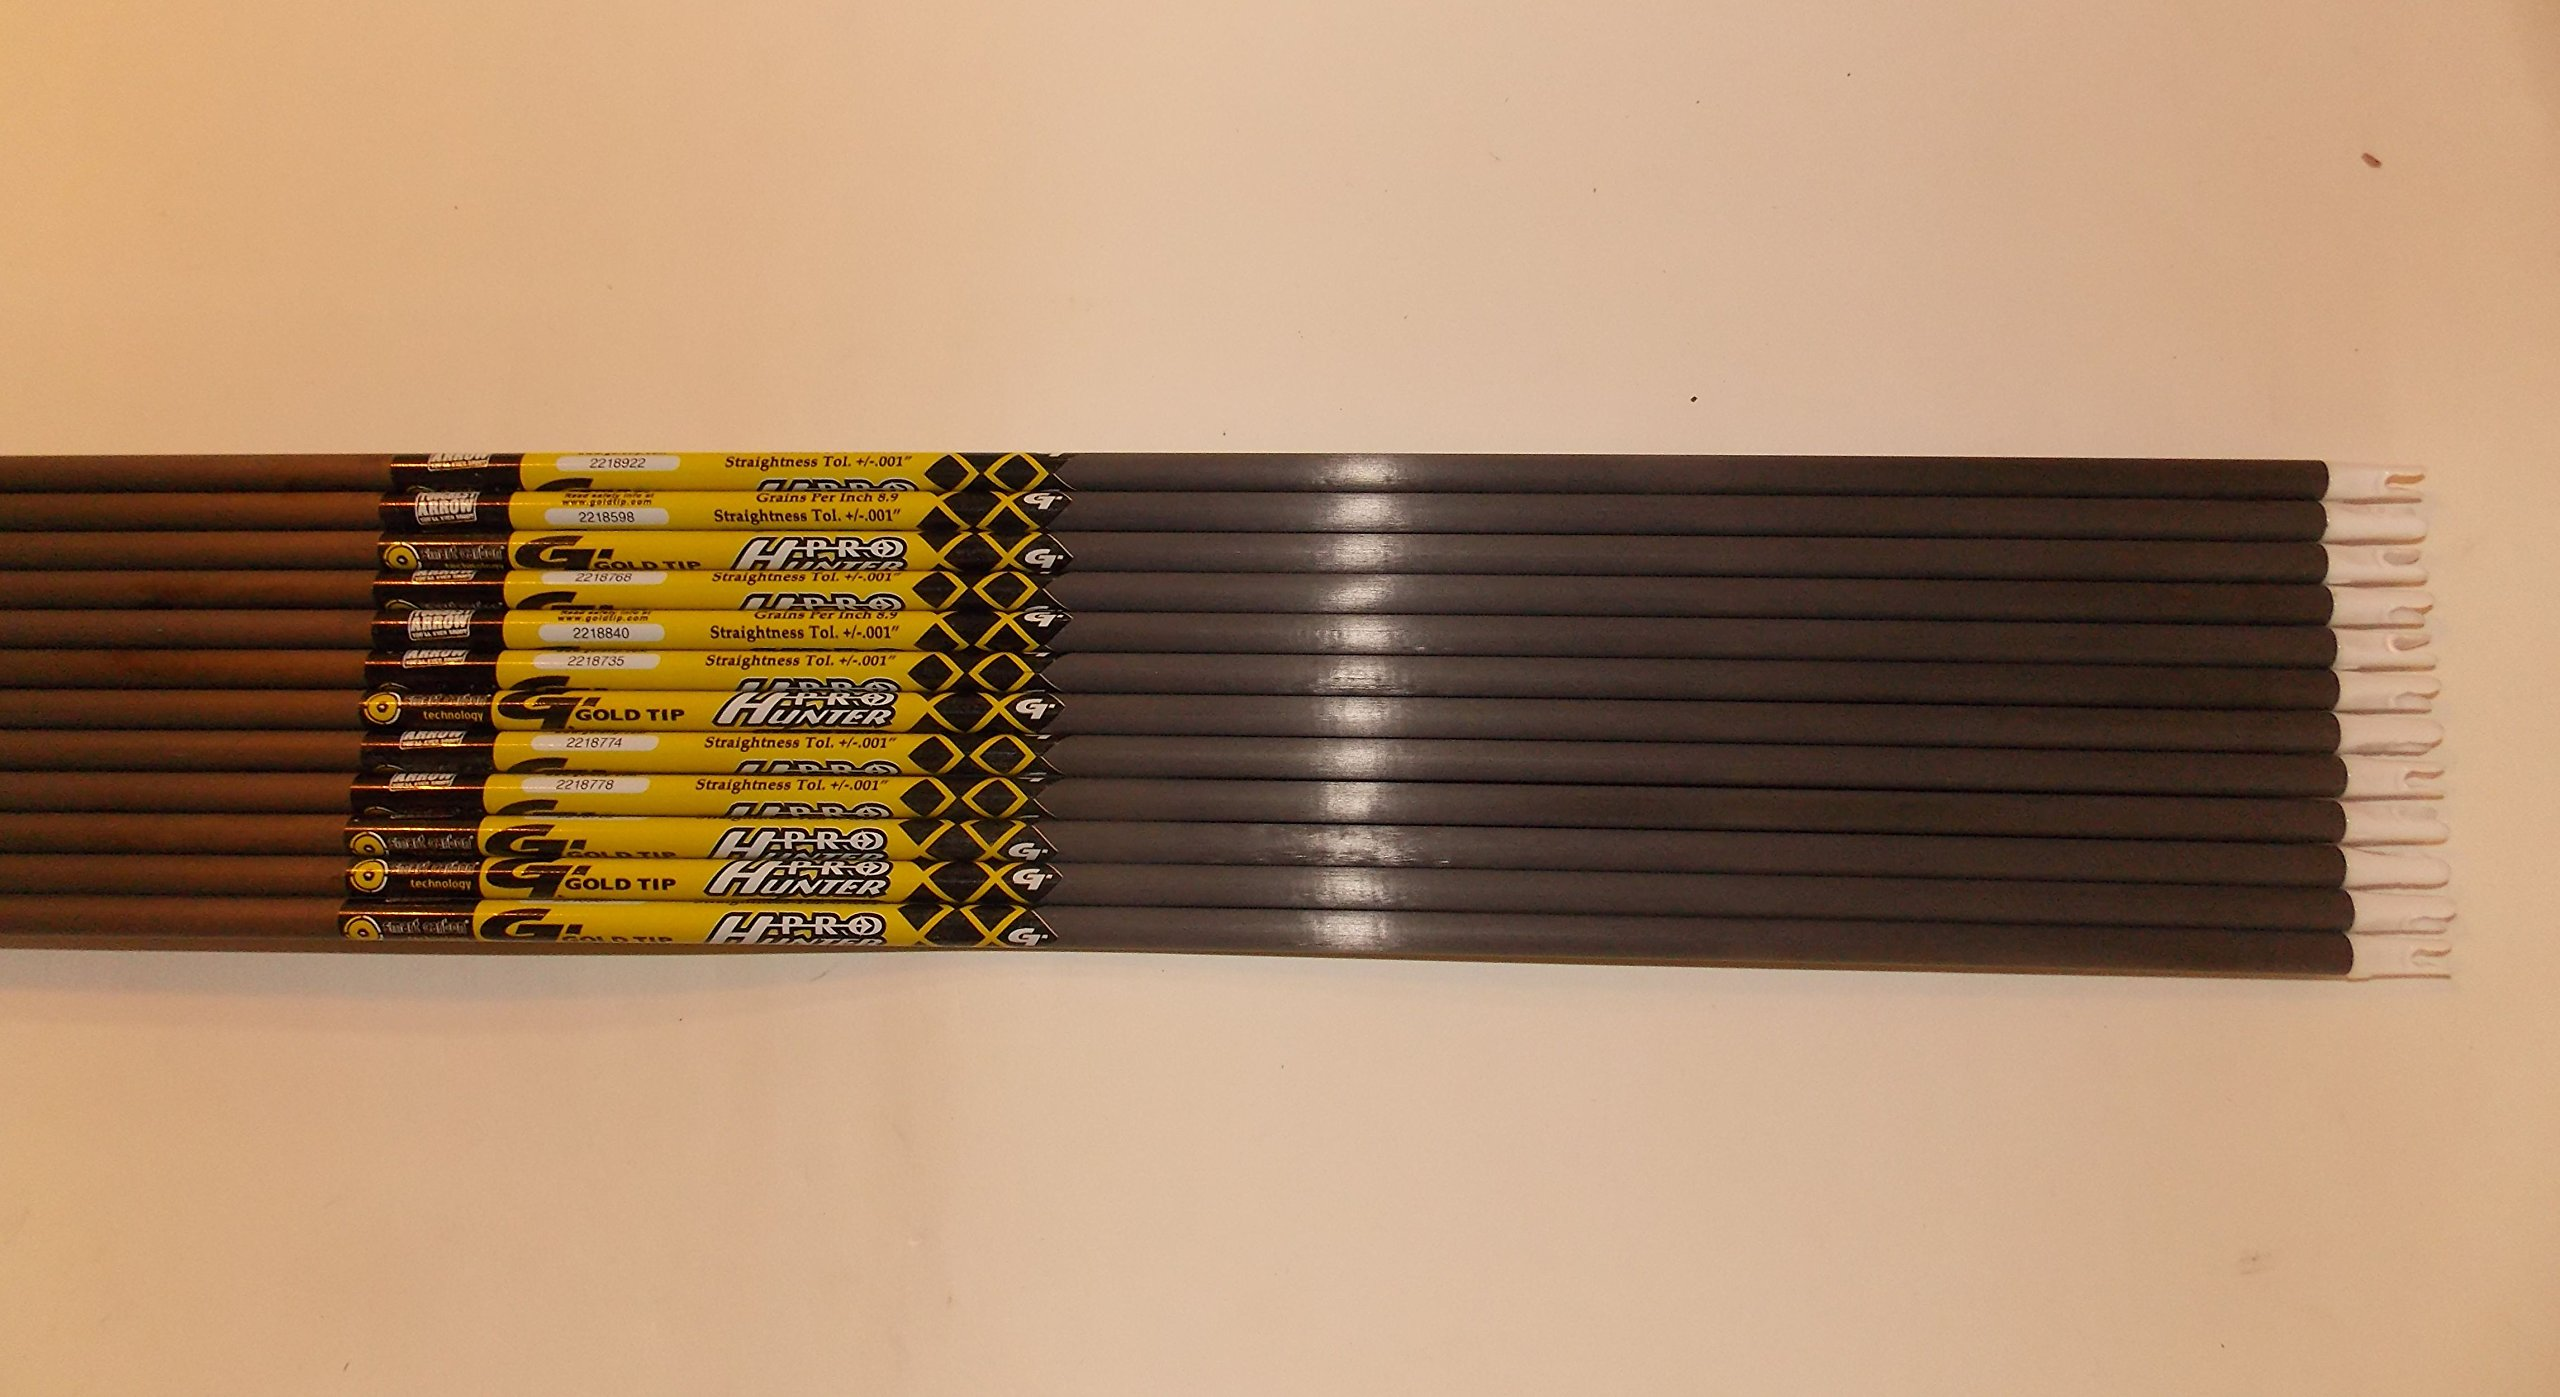 Gold Tip Pro Hunter 5575/400 Carbon Arrows w/Blazer Vanes Mossy Oak Wraps 1Dz.